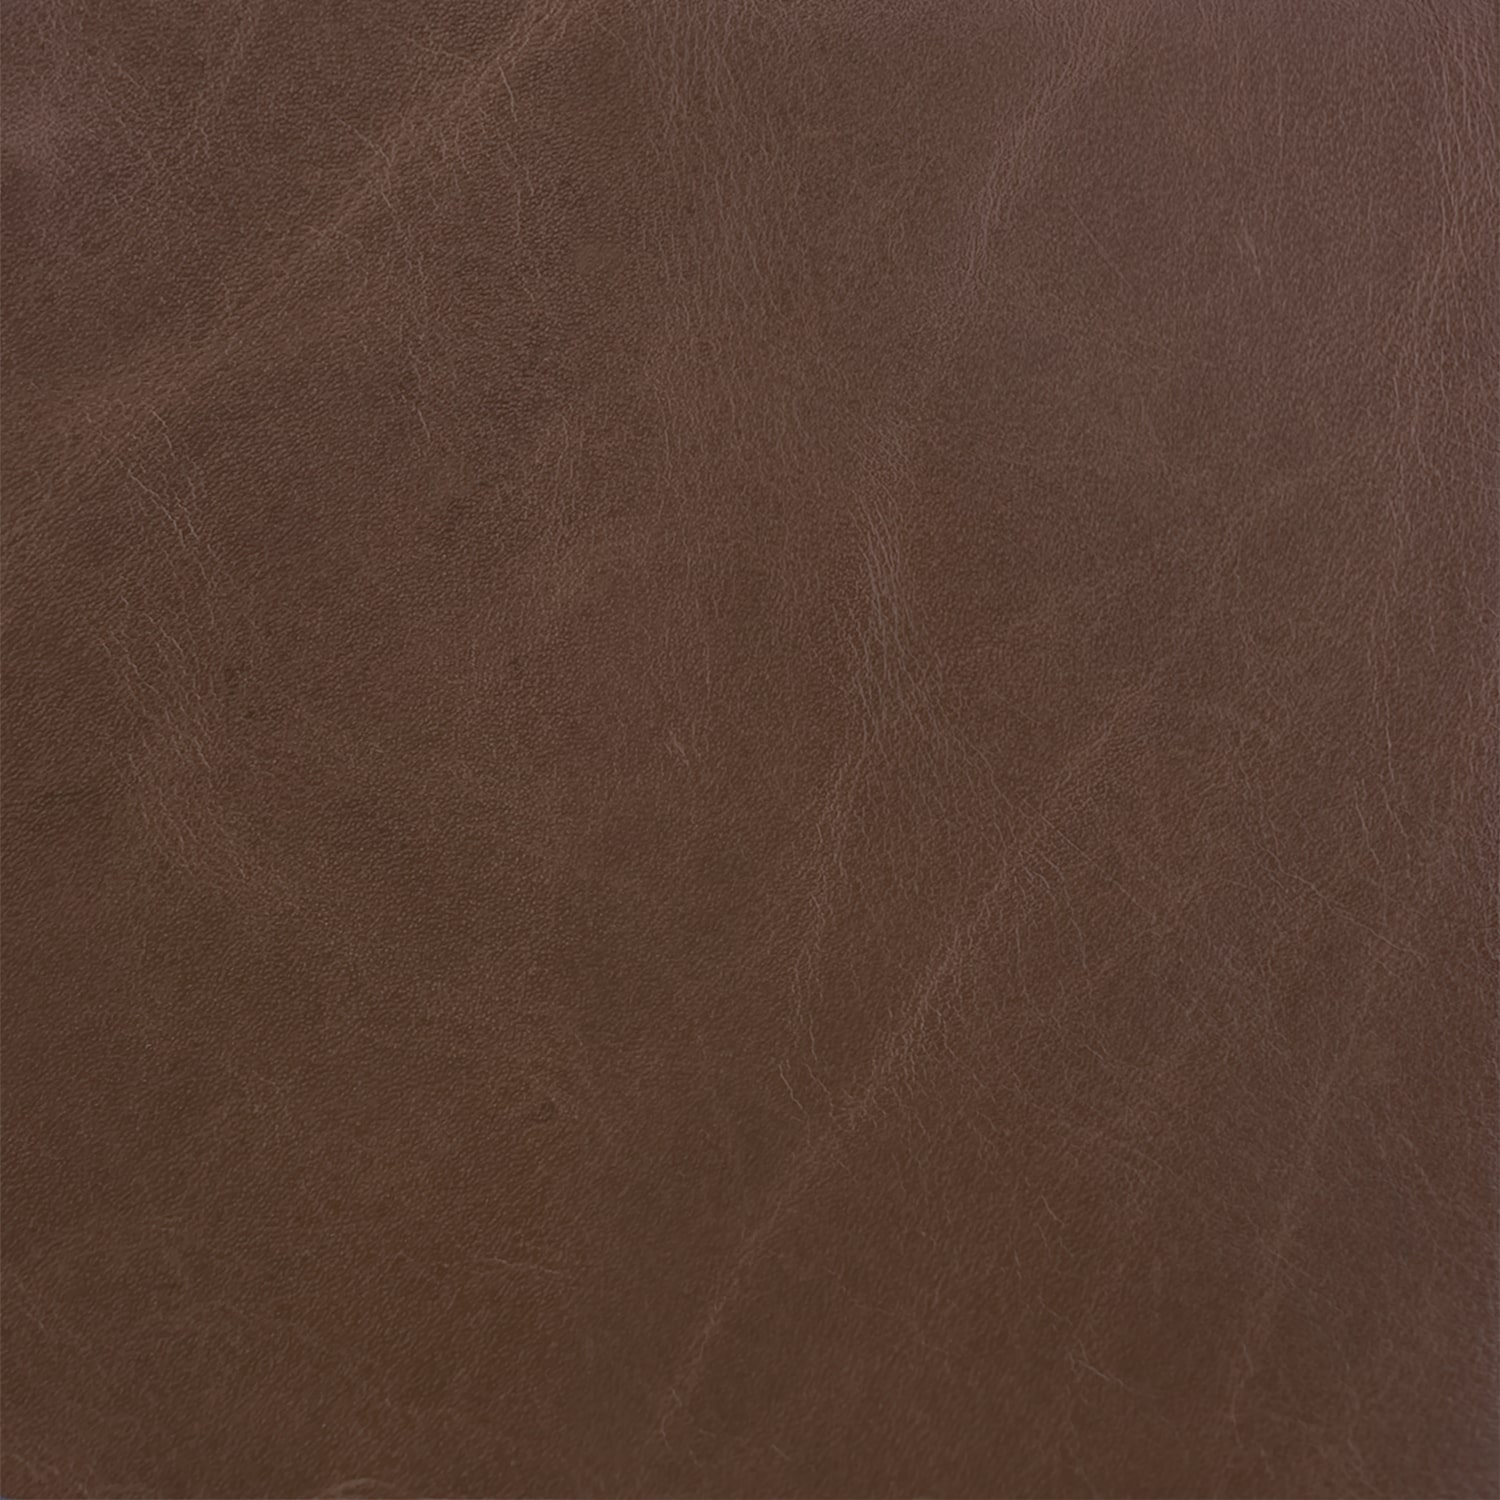 Flagstaff: Portobello (grade G): #FLG1630<br>Unique distressed markings, permiated with wax, rich vibrant color; light protection